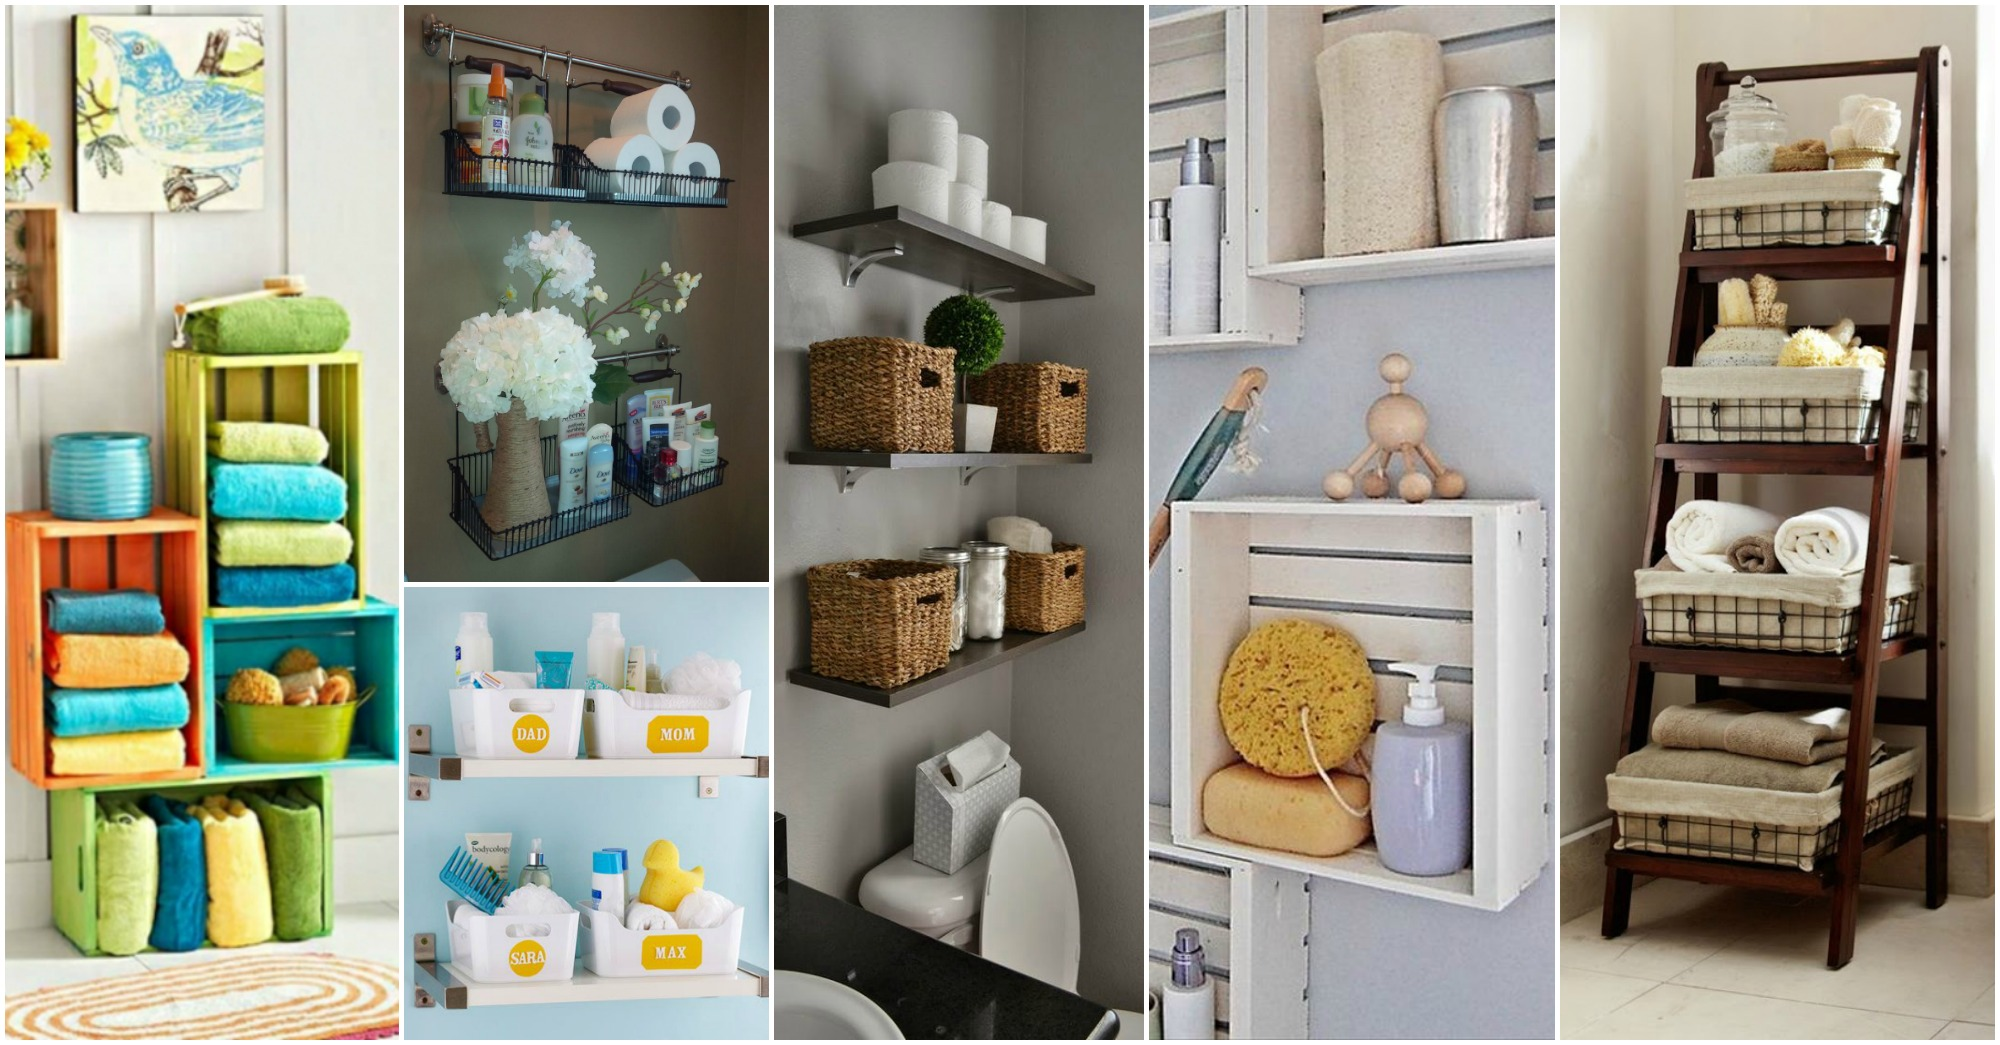 Diy bathroom storage ideas - Diy Bathroom Storage Ideas 20